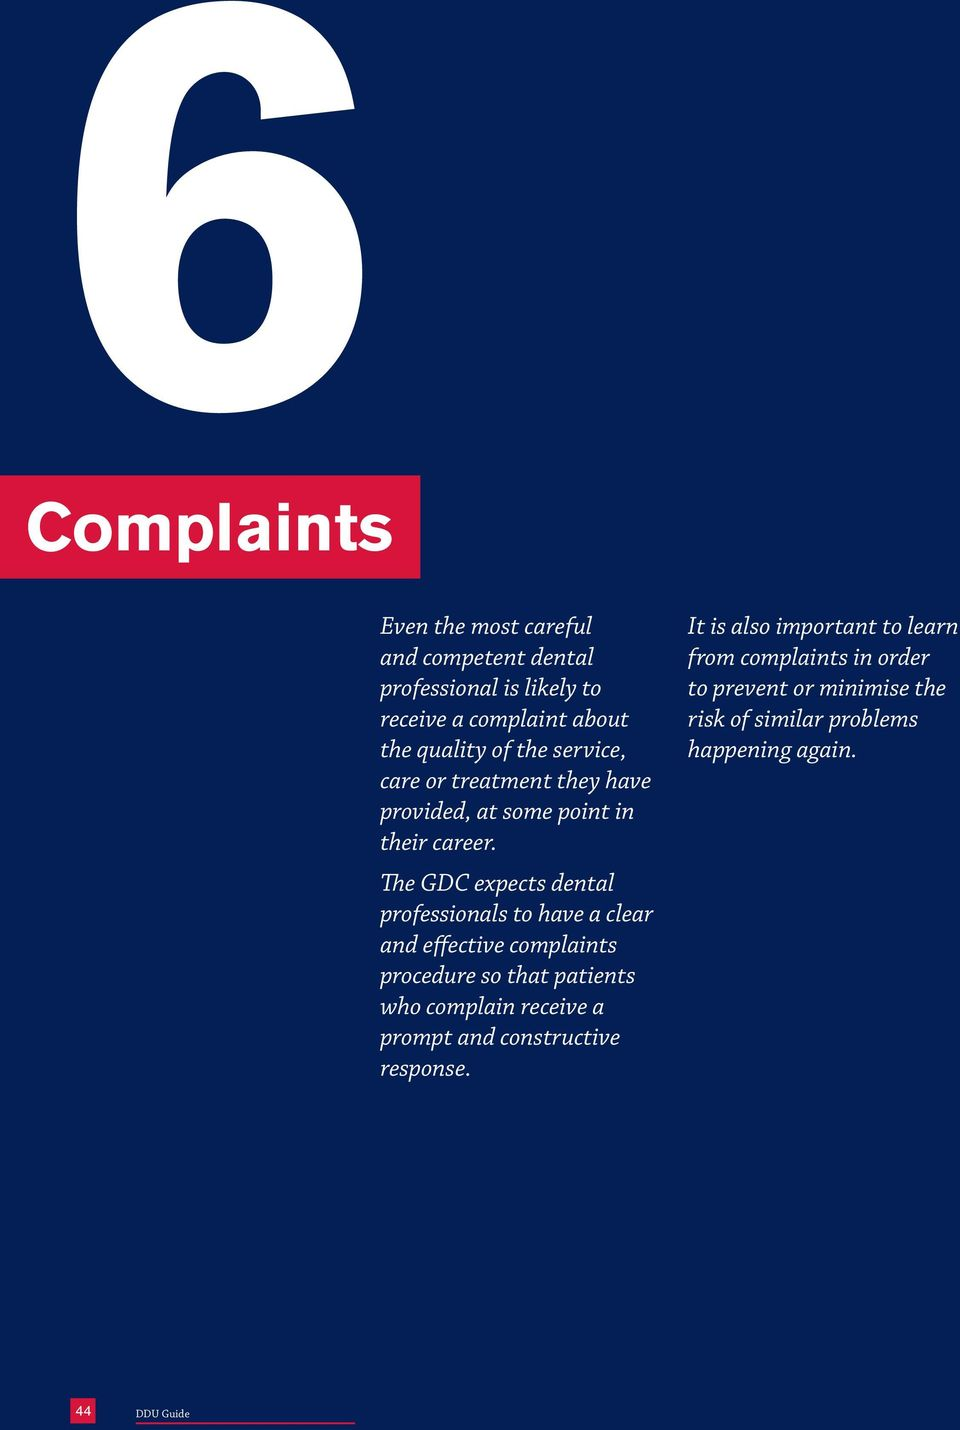 The GDC expects dental professionals to have a clear and effective complaints procedure so that patients who complain receive